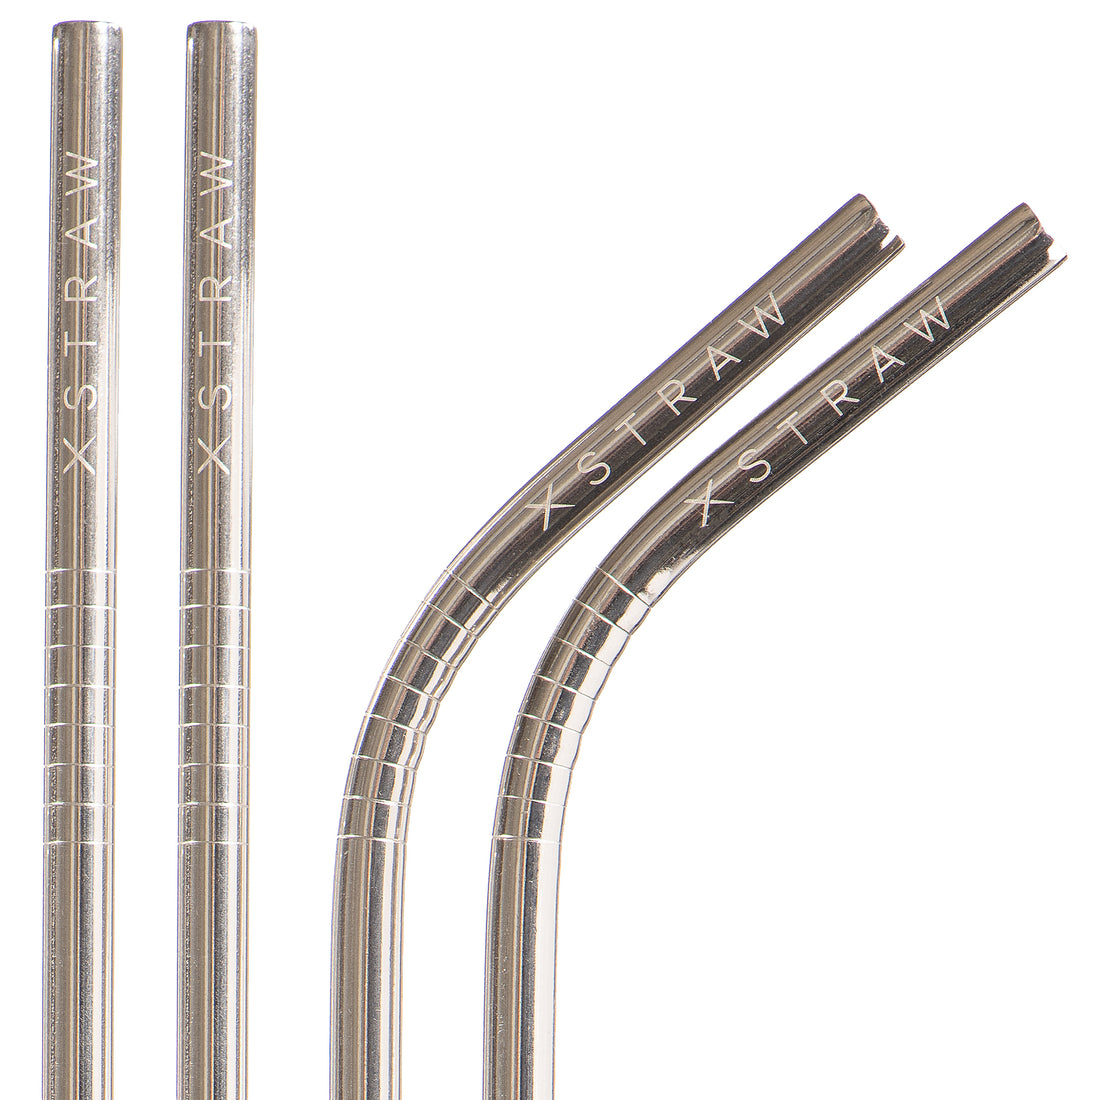 Classic Silver - Steel Straws 4 Pack<br>$24.95